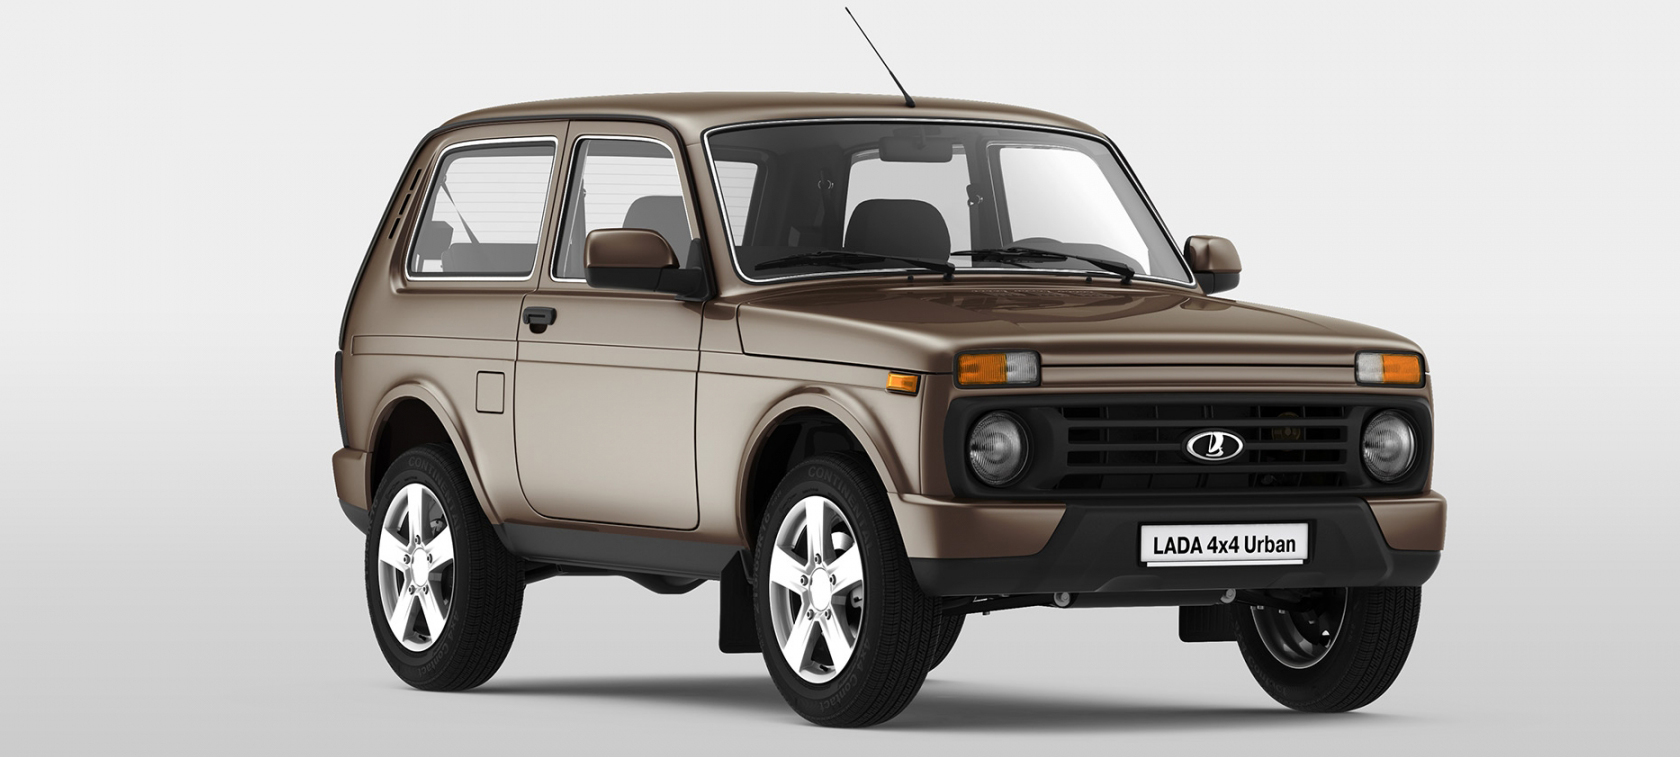 Lada 4x4 Urban LPG - forever young